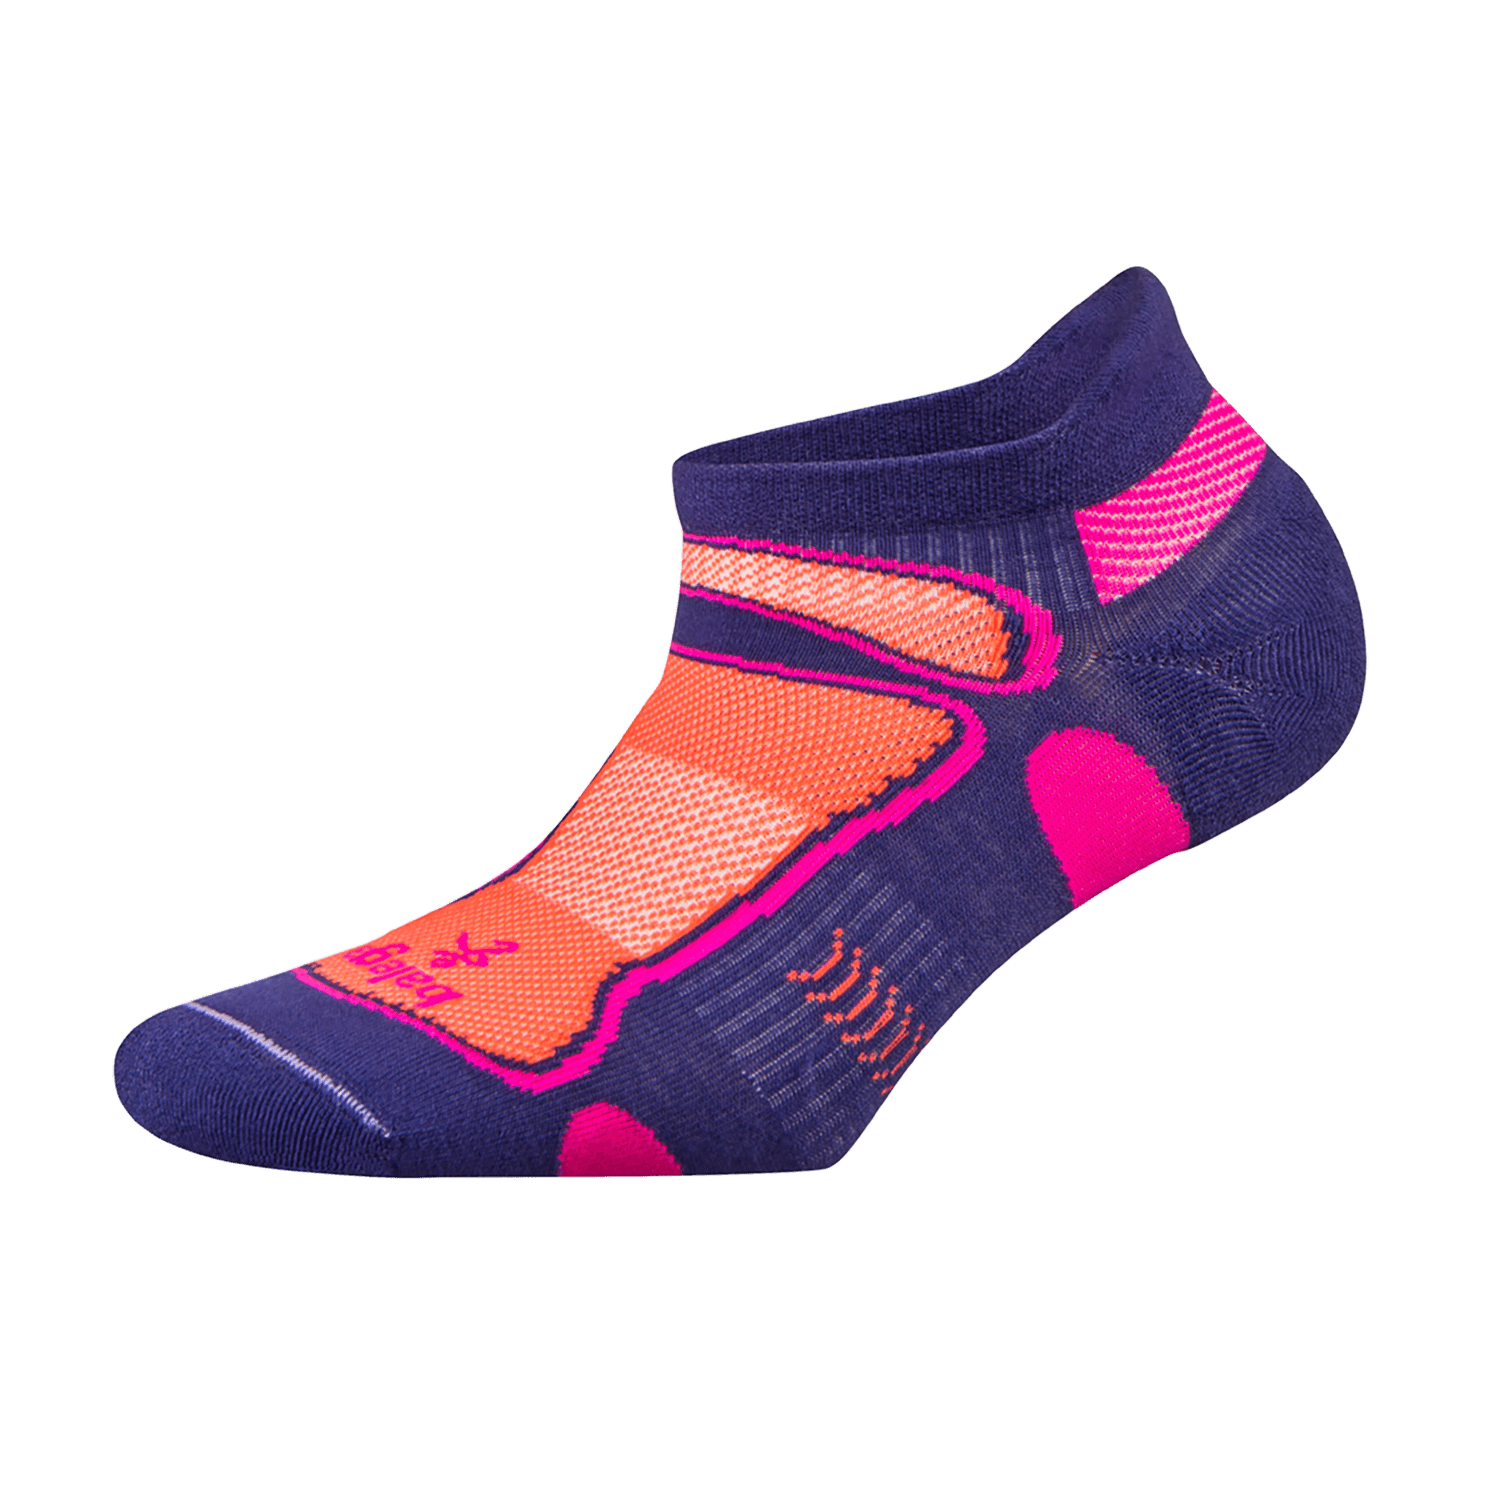 Ultra Light No Show Technical Running Sock - Purple/Neon